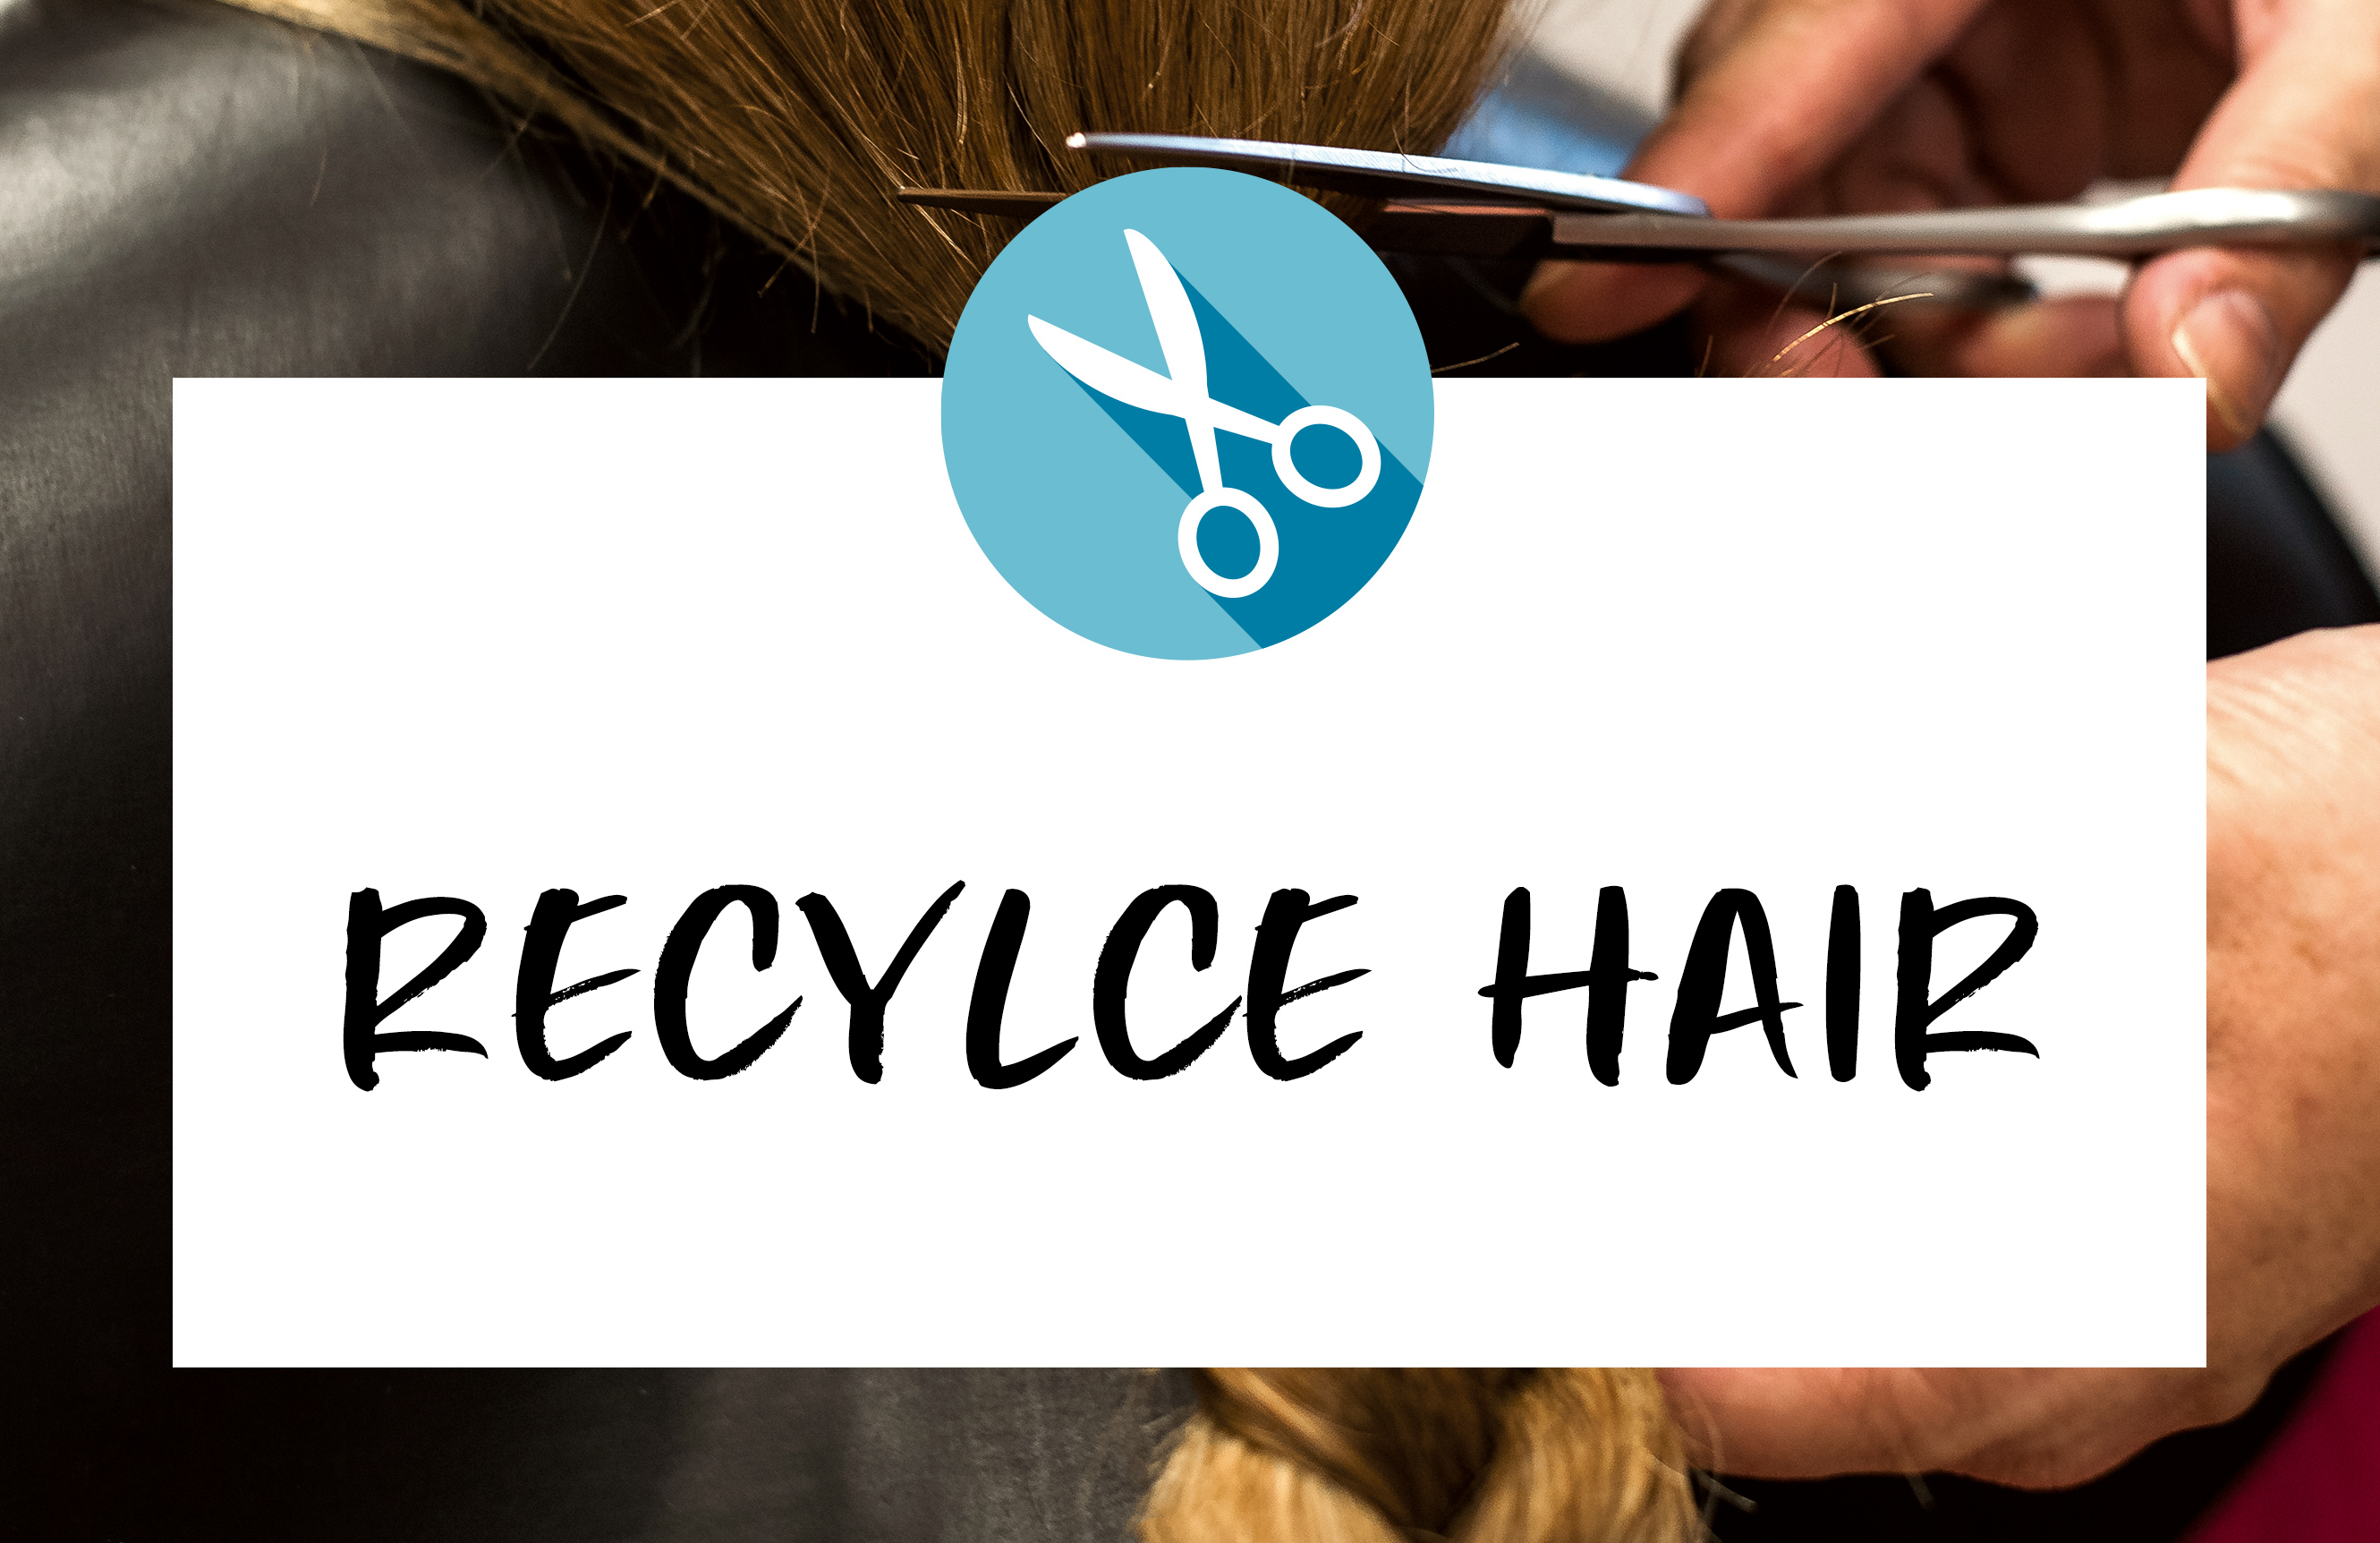 Recycle Hair